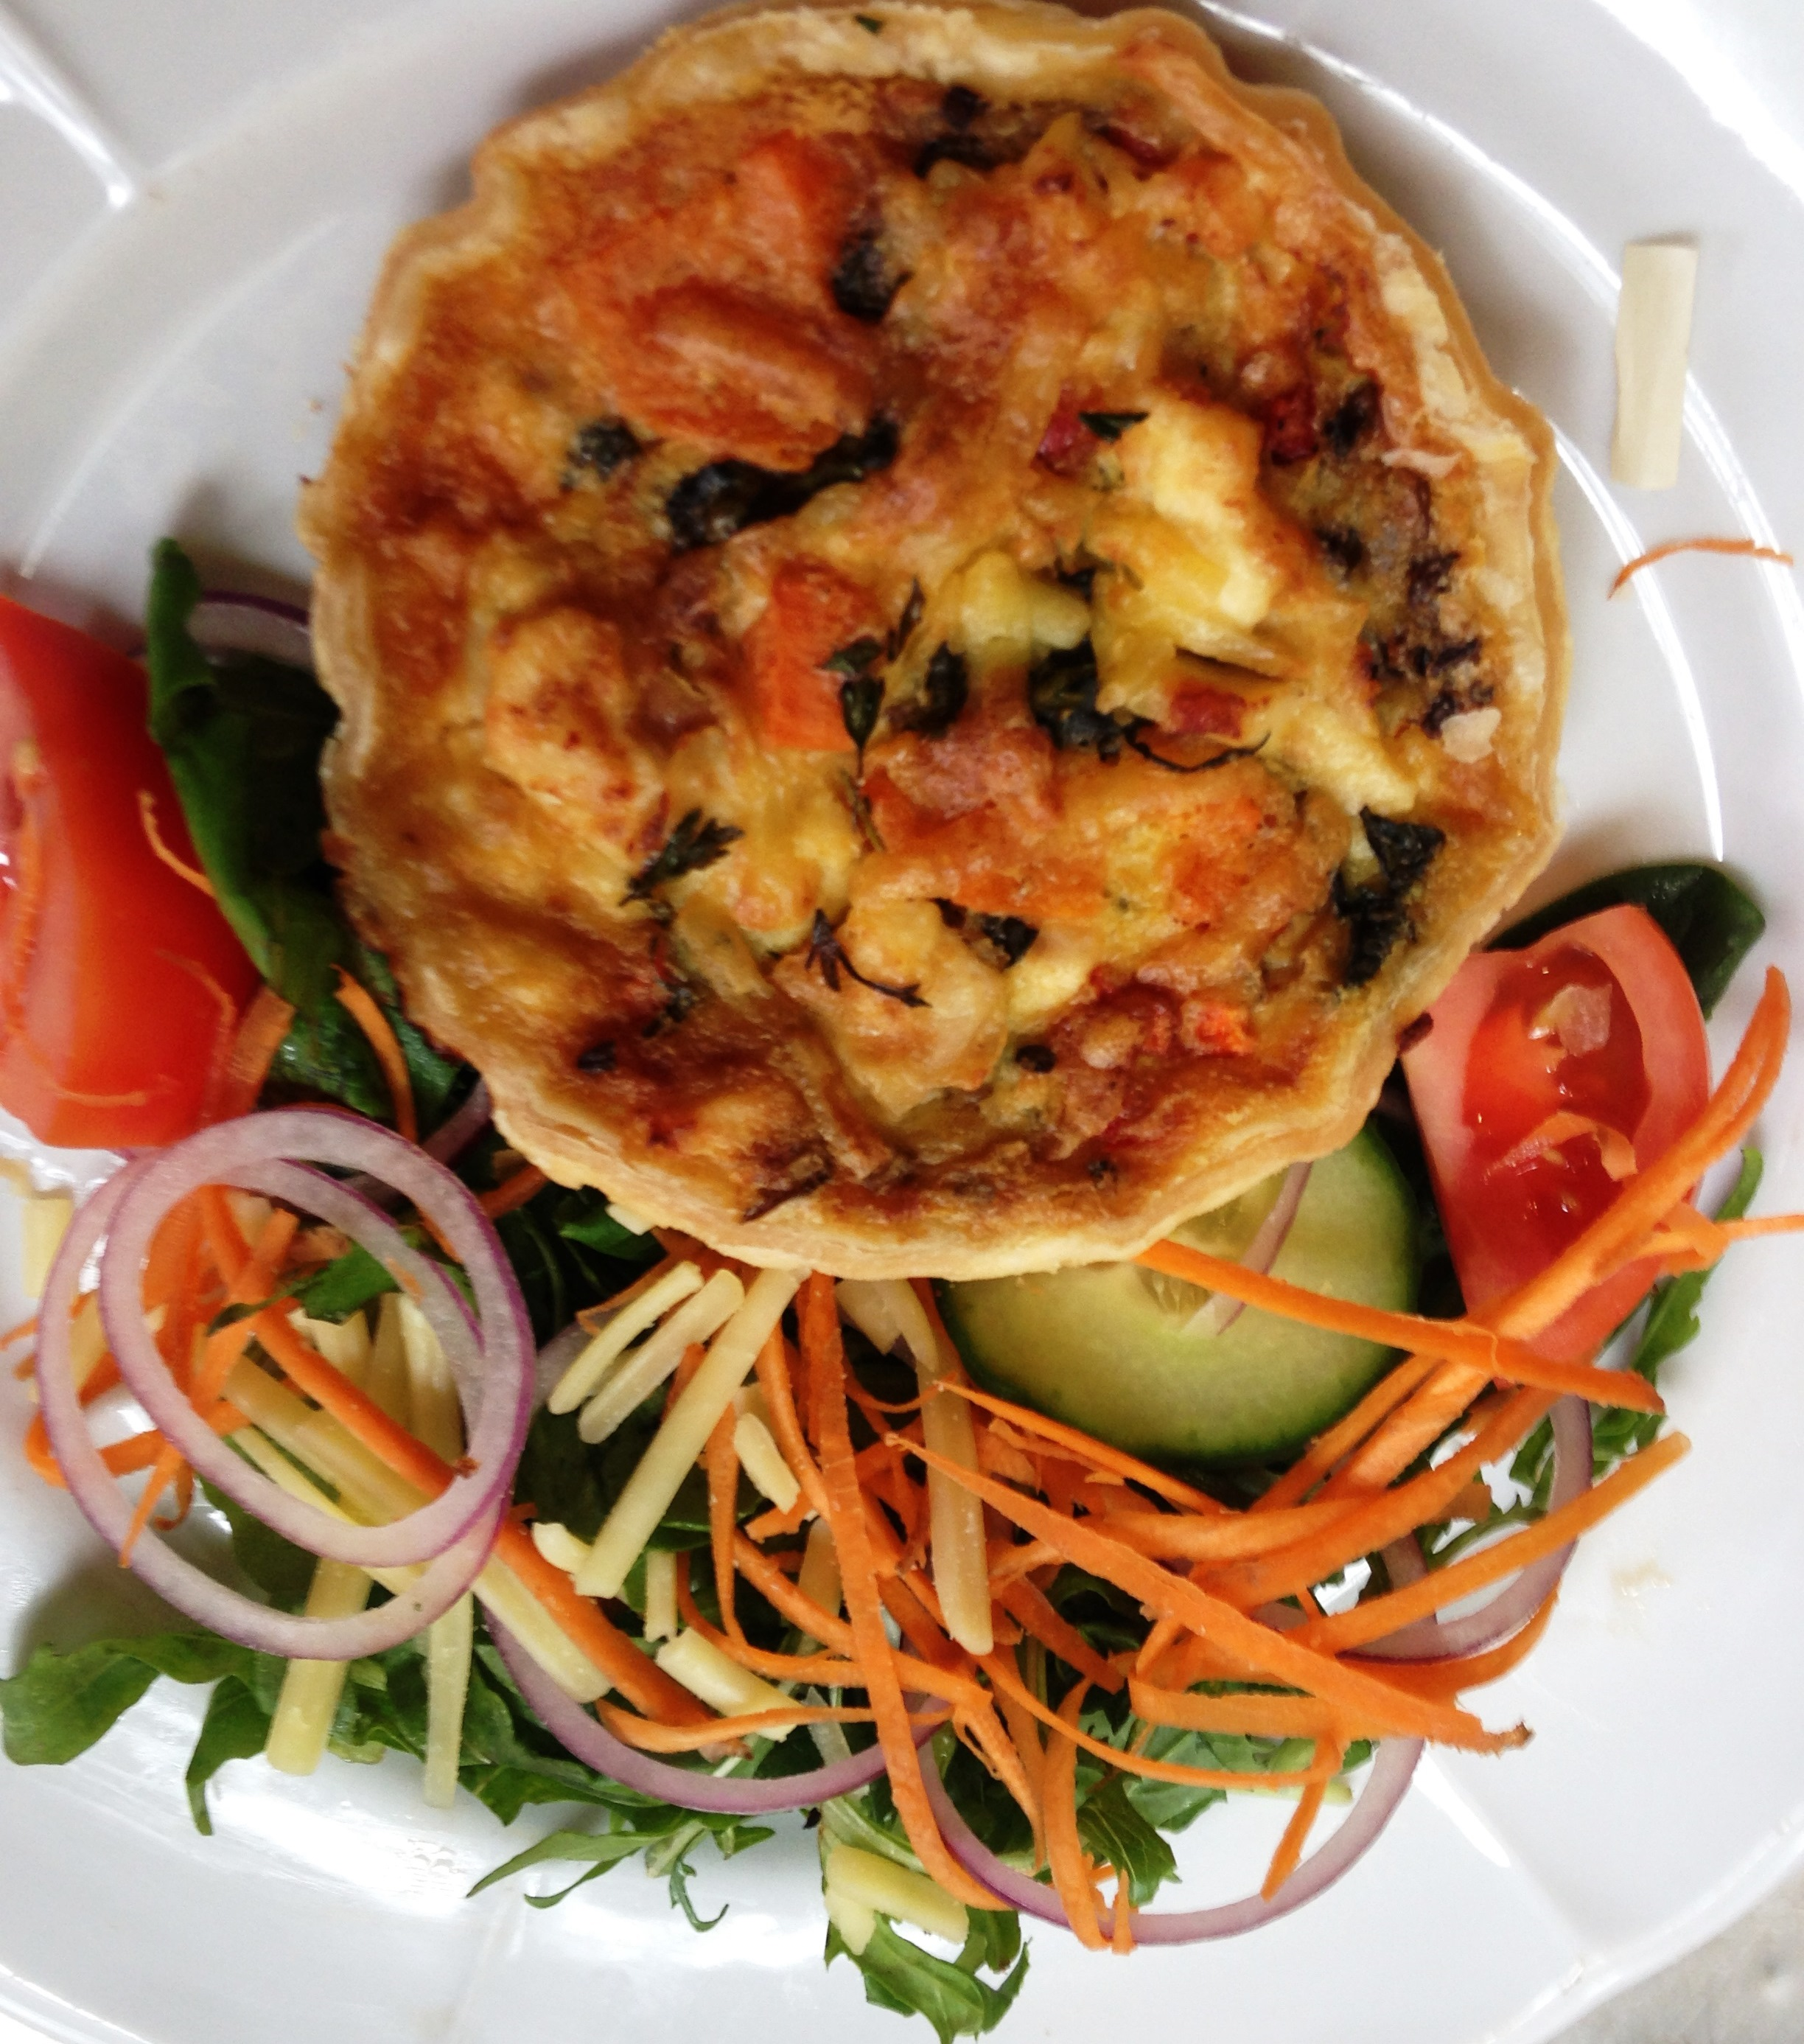 Quiche & salad lunch.